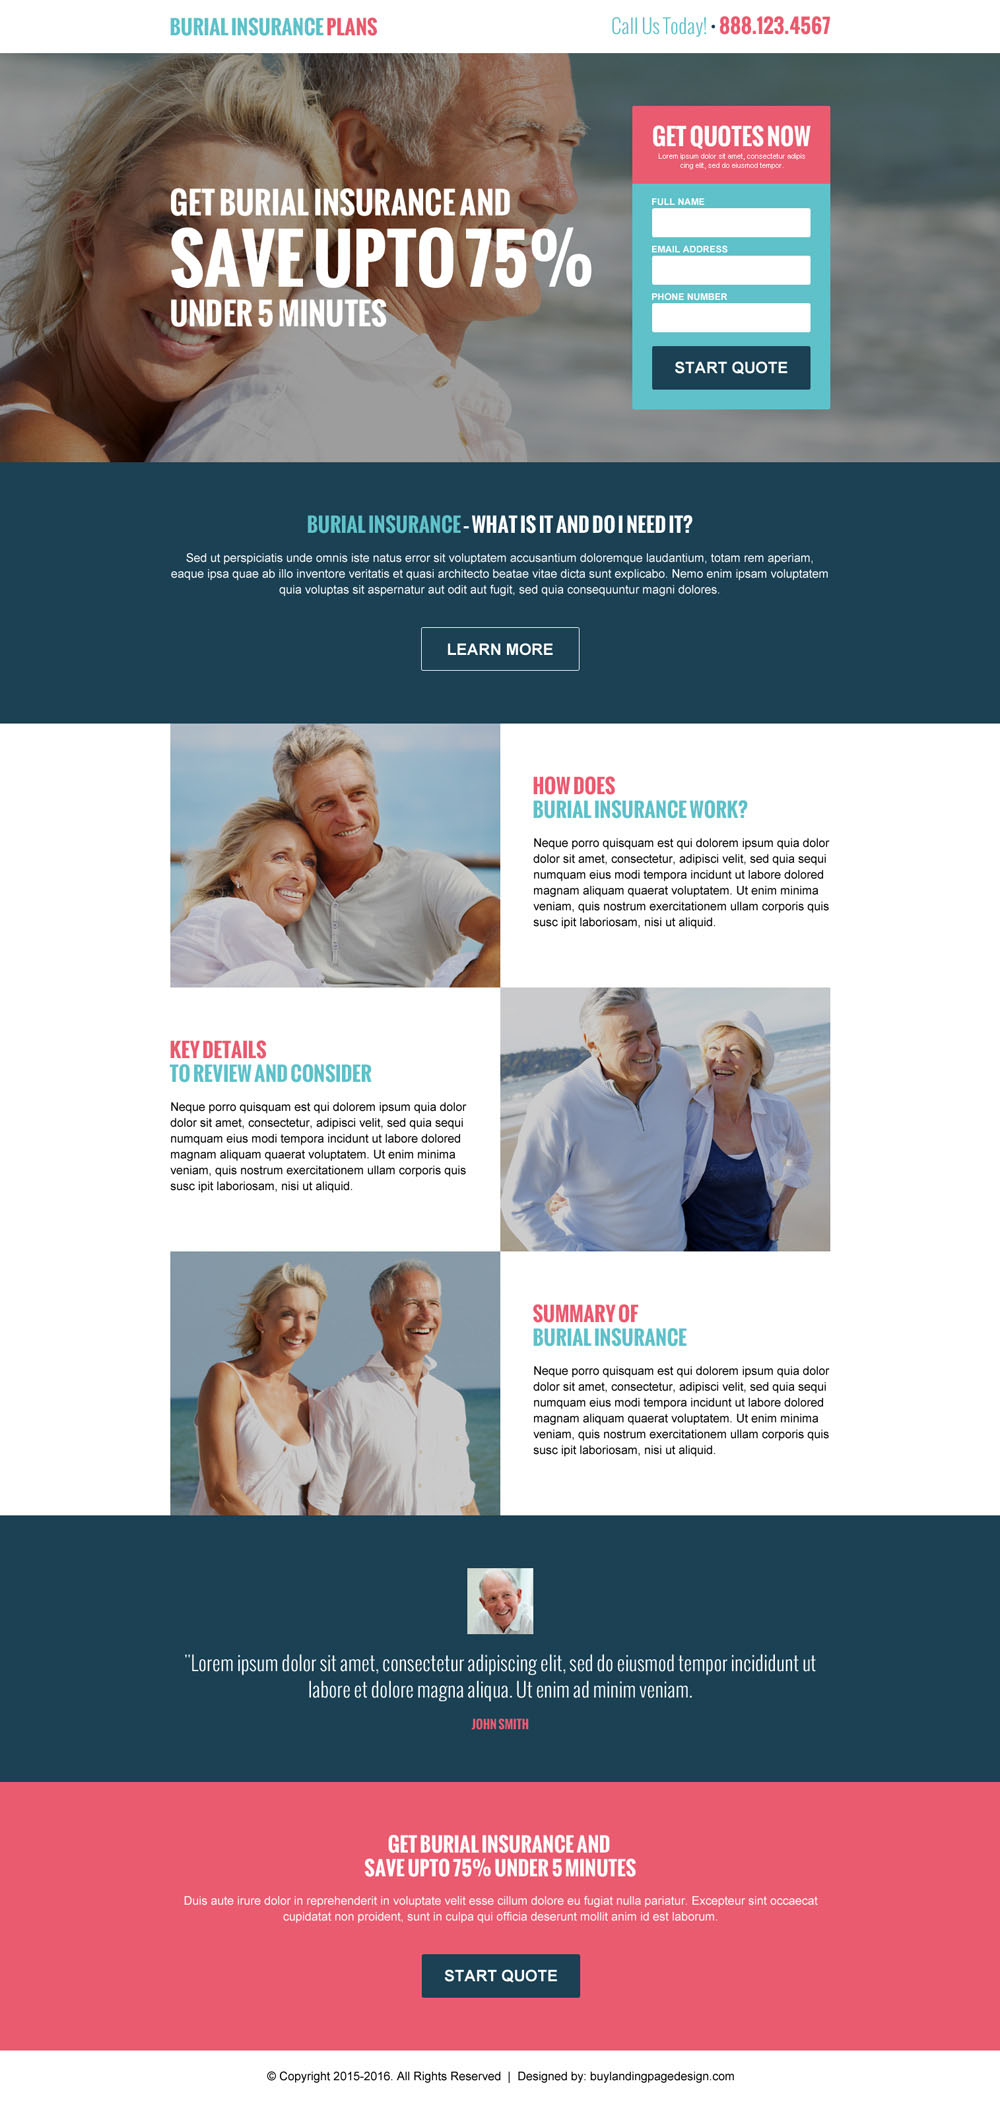 converting-burial-insurance-plans-to-save-money-lead-gen-landing-page-003